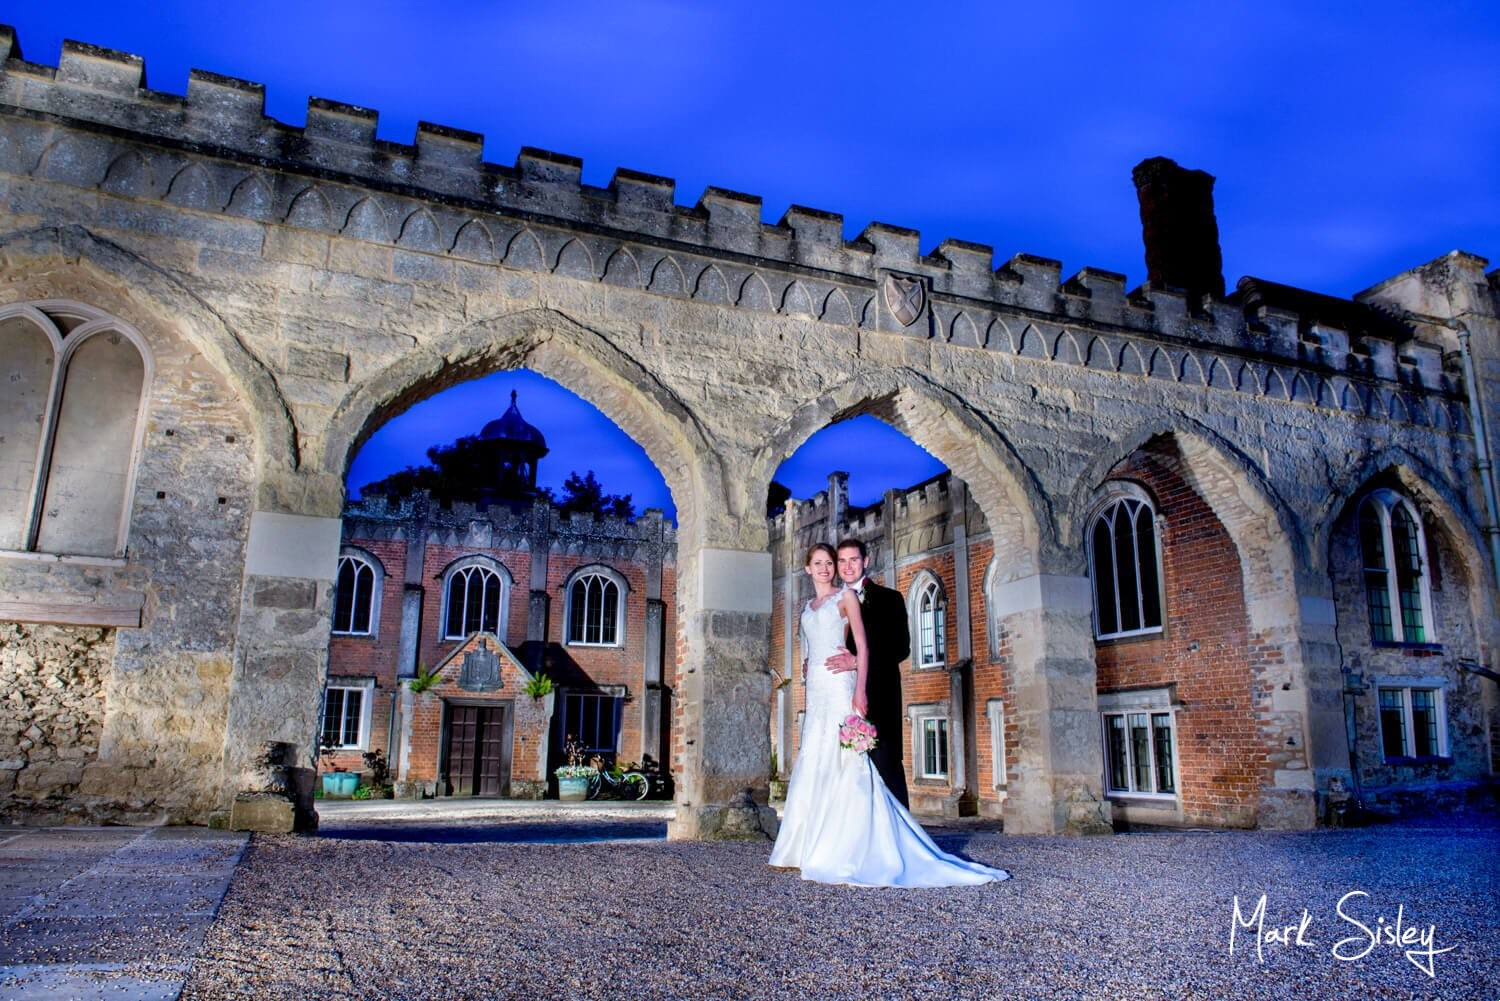 Choosing a wedding photographer - newlyweds at Nether Winchendon House